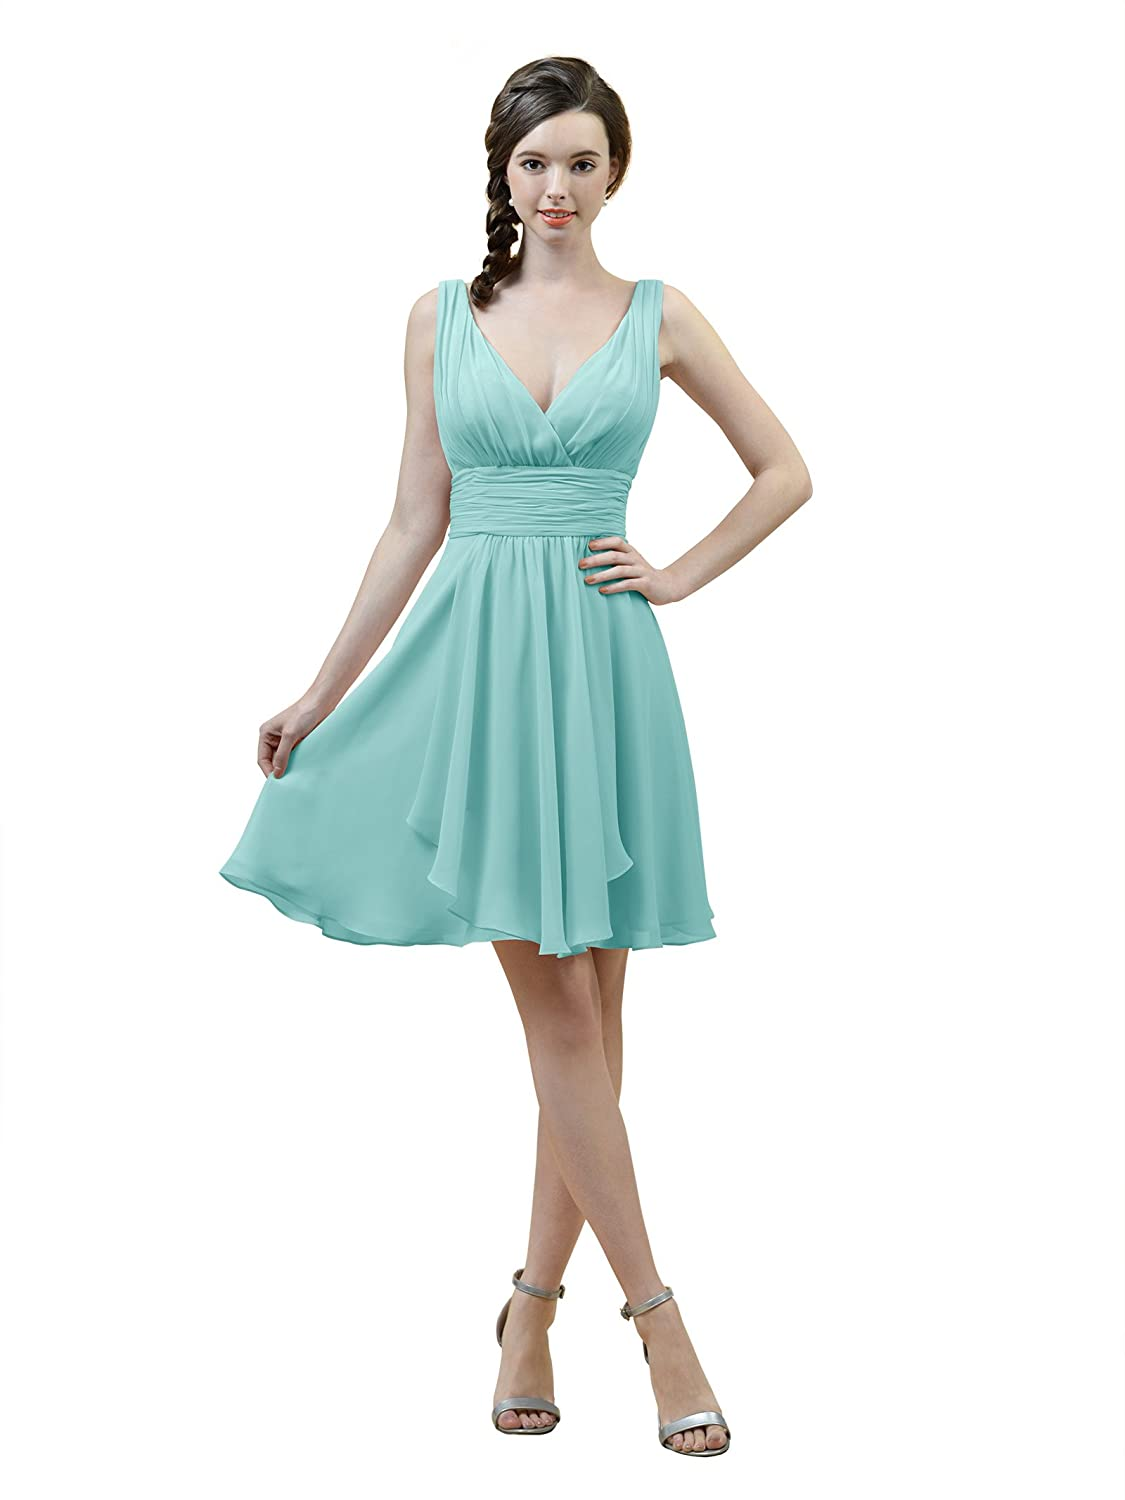 1ba1481e0e07 Shipping: all dresses are shipped out by DHL (3-5 working days) A-Line  chiffon dress, V-neck, sleeveless, short simple gown, suitable for Wedding  Party Prom ...